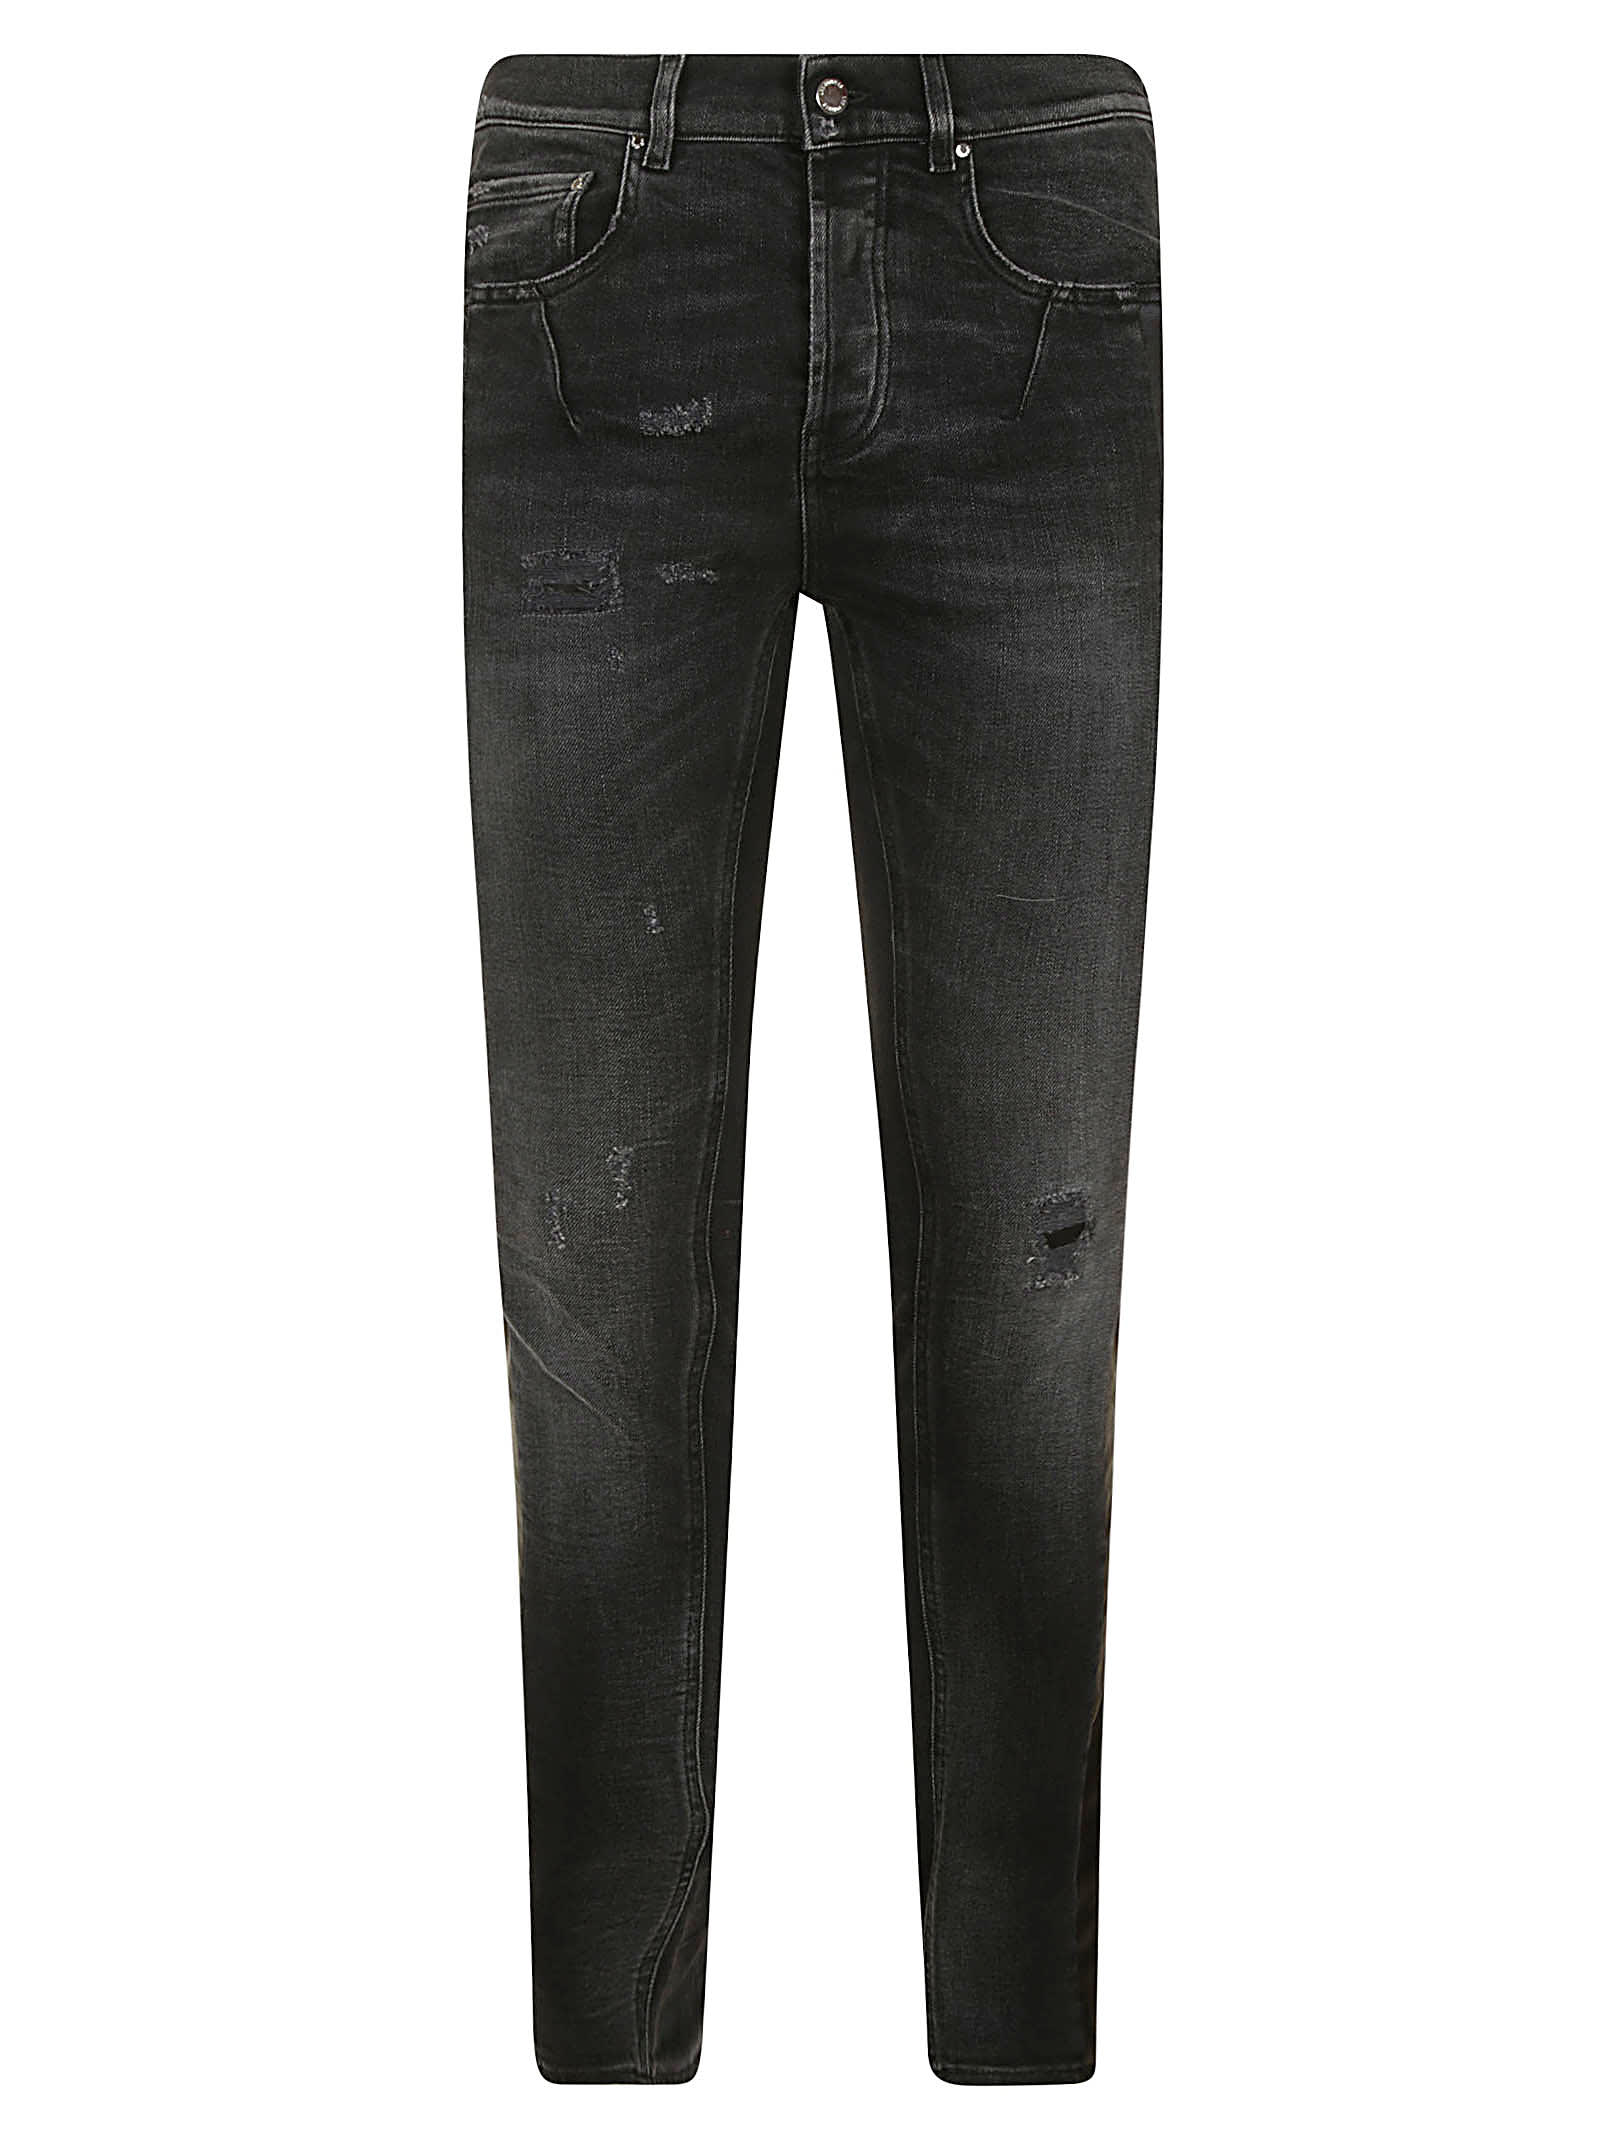 Les Hommes LEATHER BAND SLIM FIT JEANS